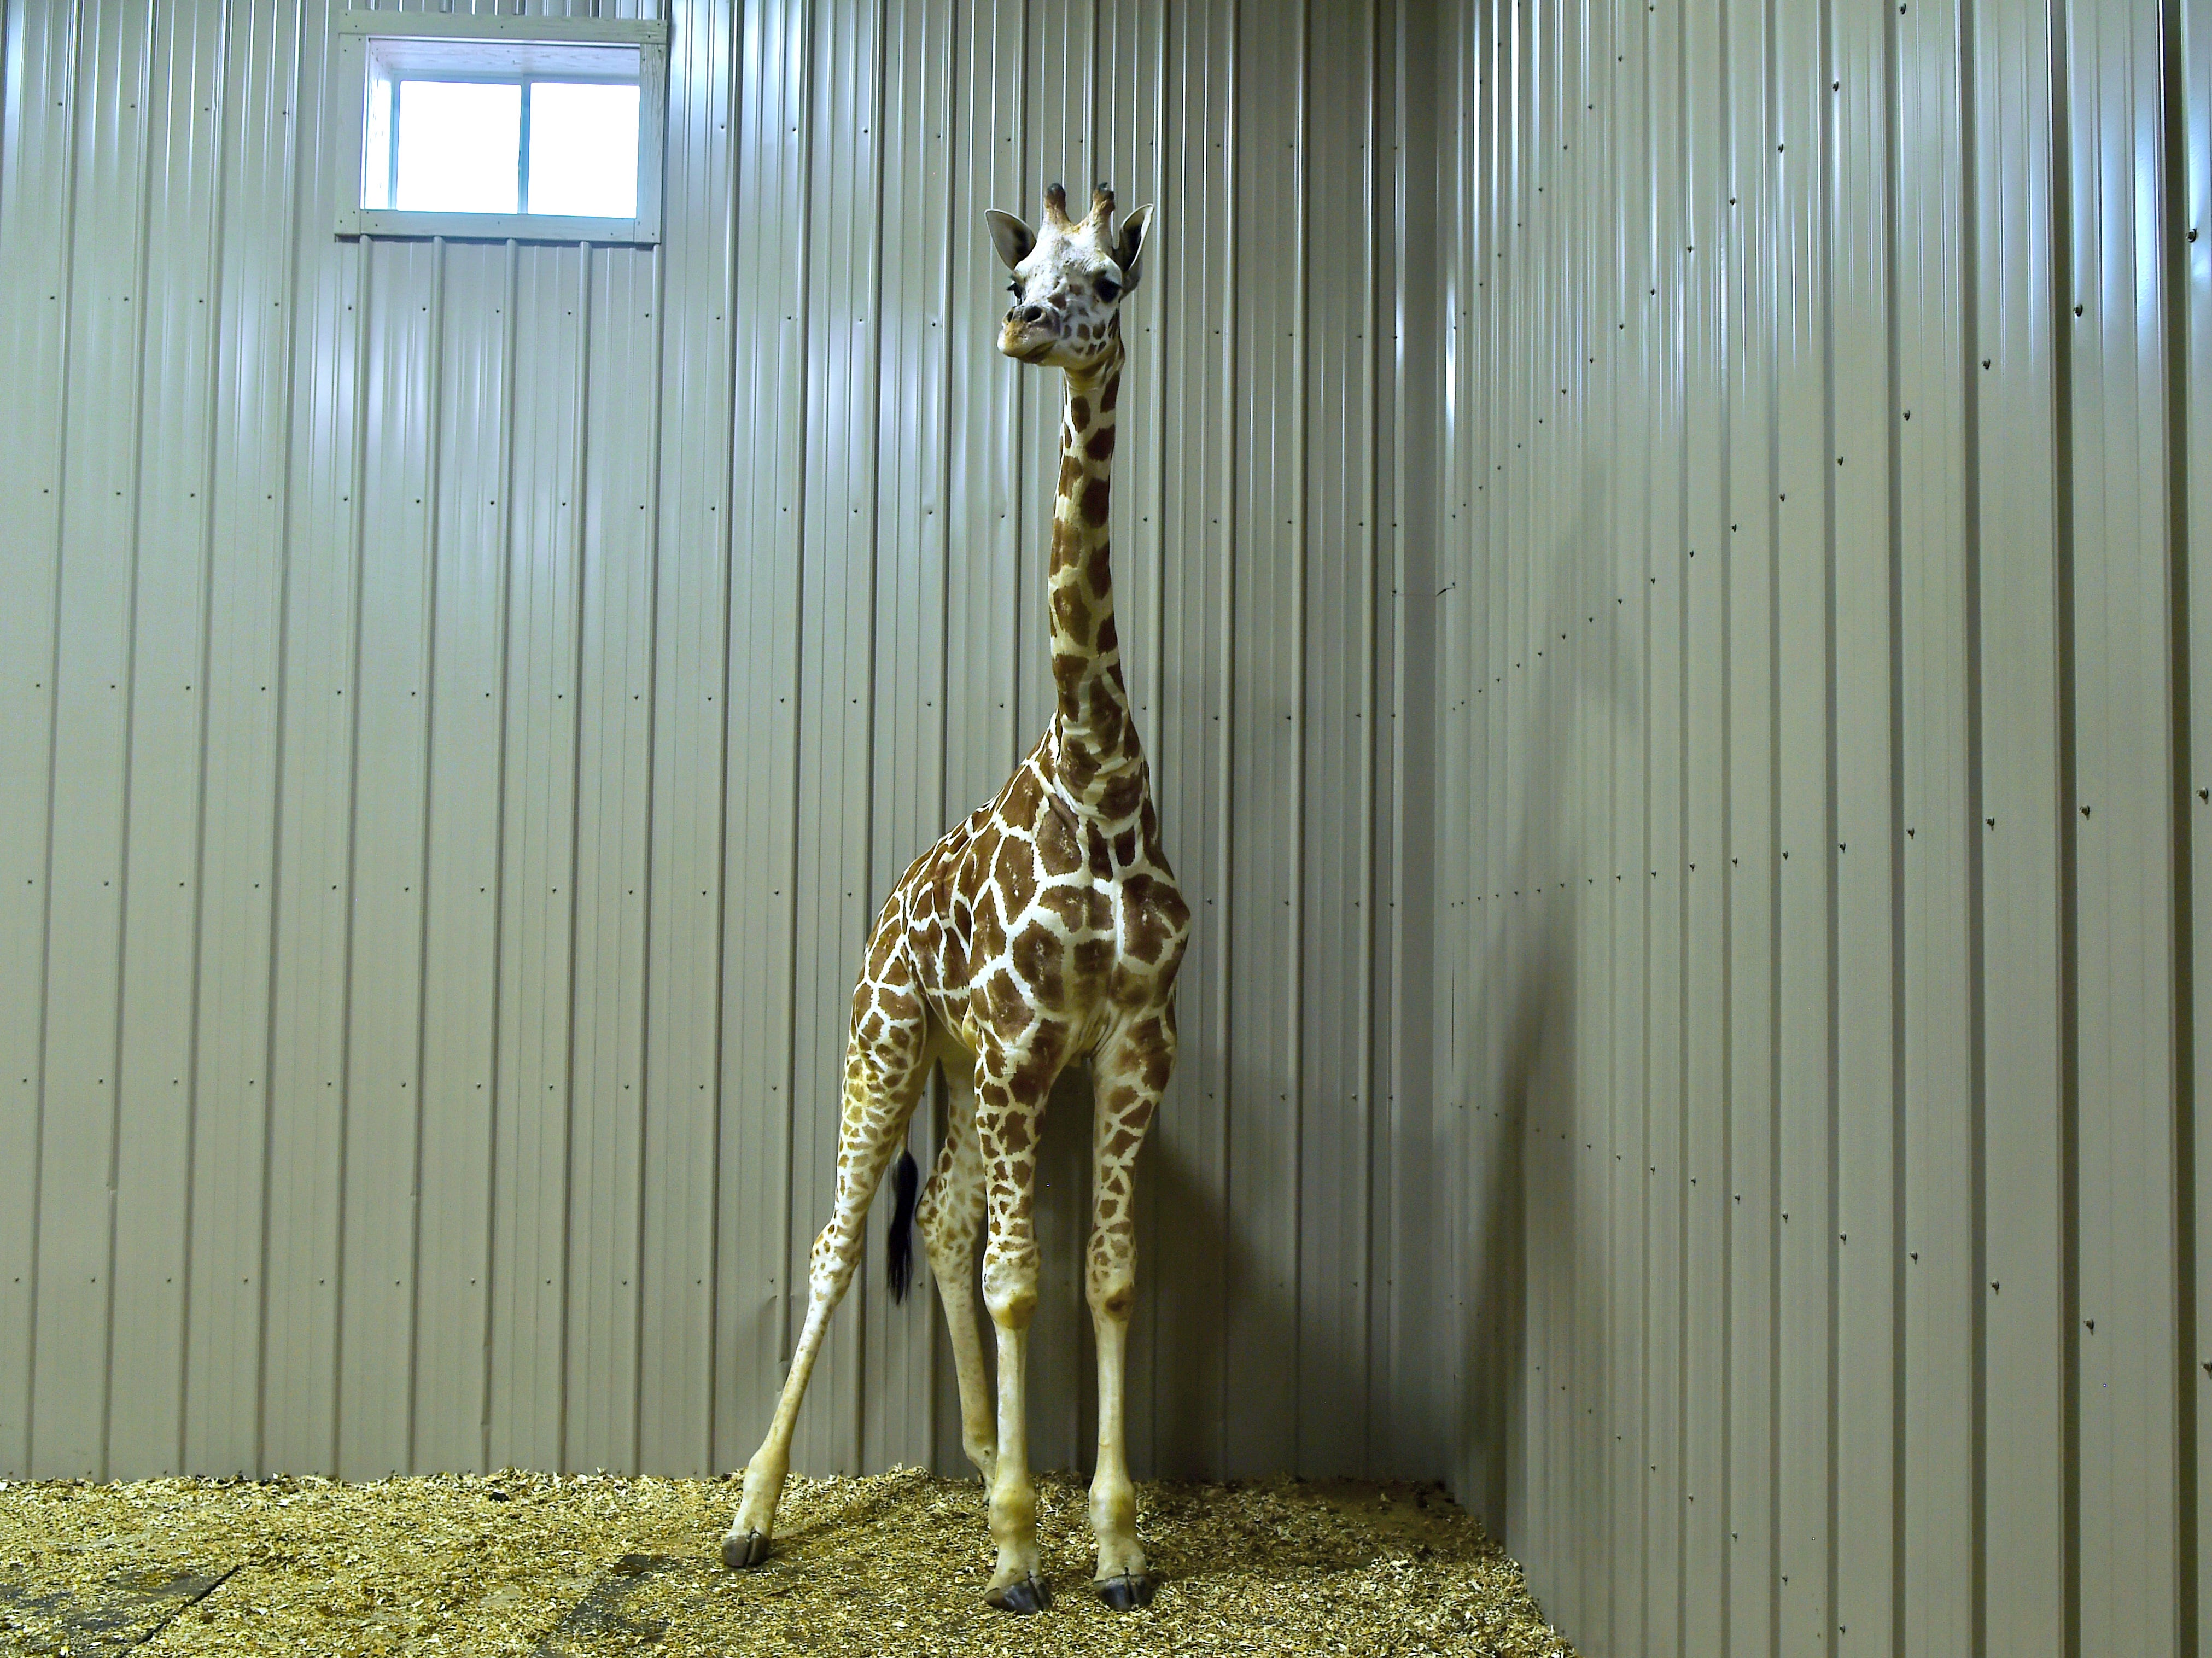 April The Giraffe's son Tajiri was recently moved into a new barn at Animal Adventure Park in Harpursville.